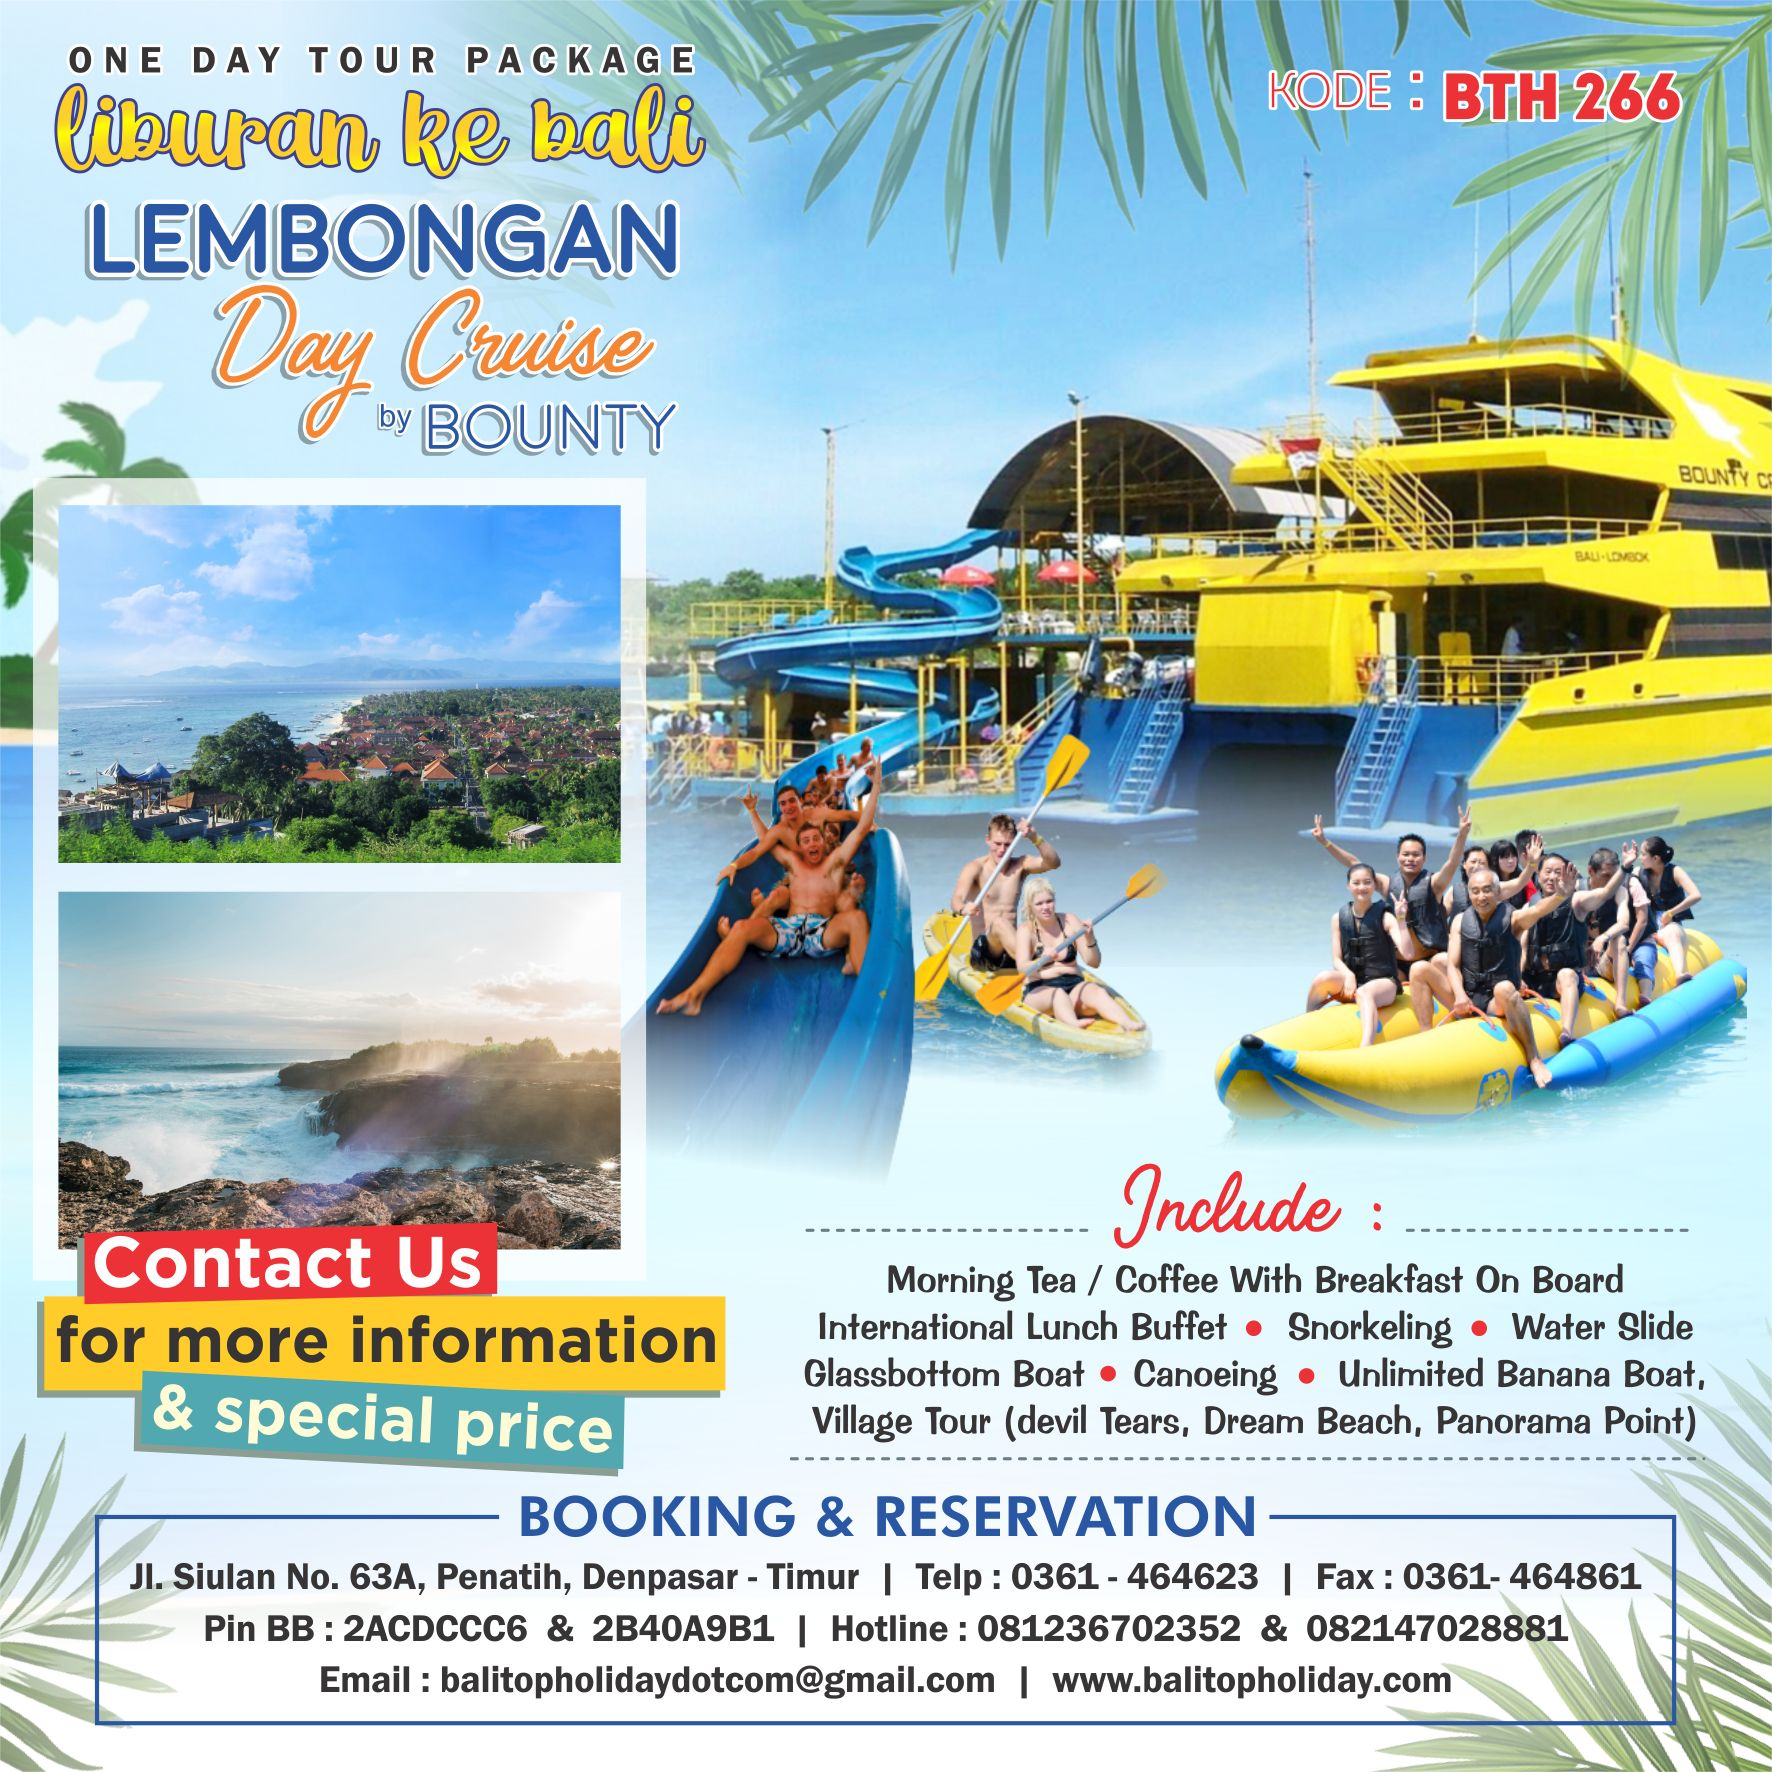 Lembongan Day Cruise by Bounty